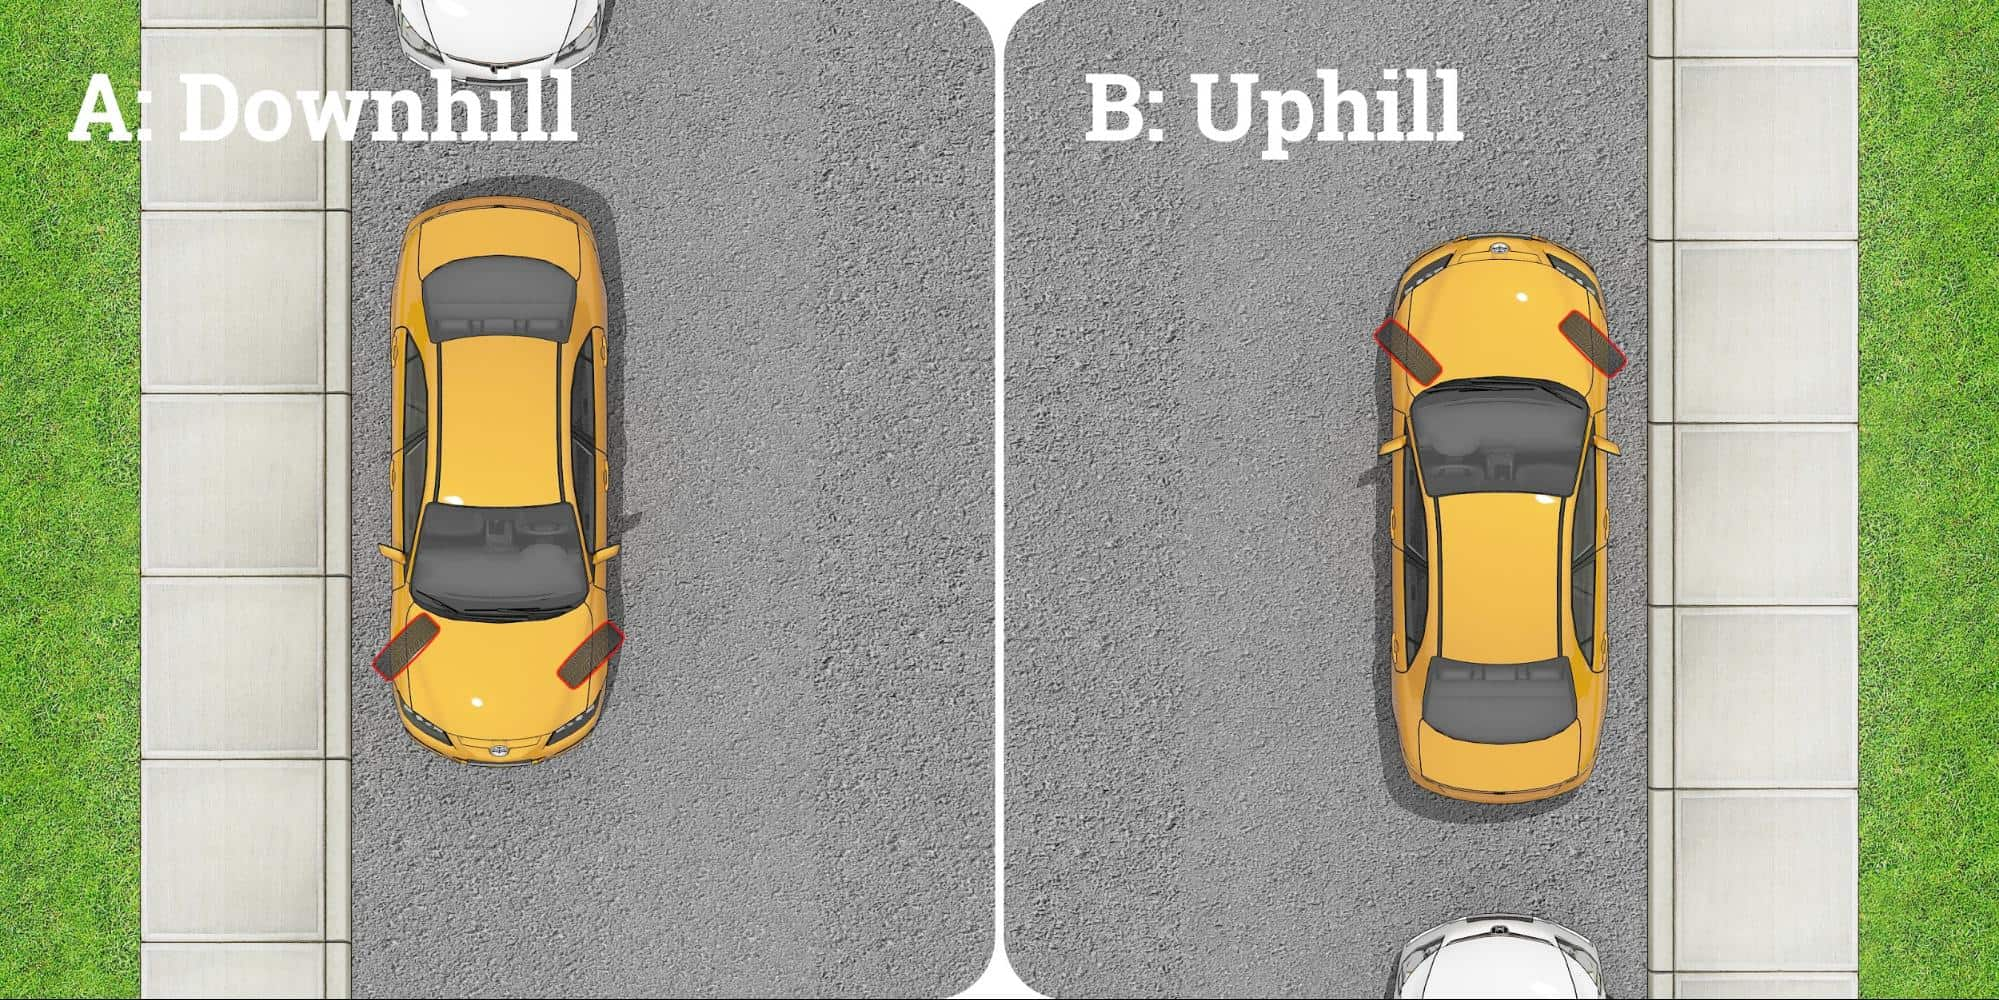 how to park uphill and downhill on roads with a curb